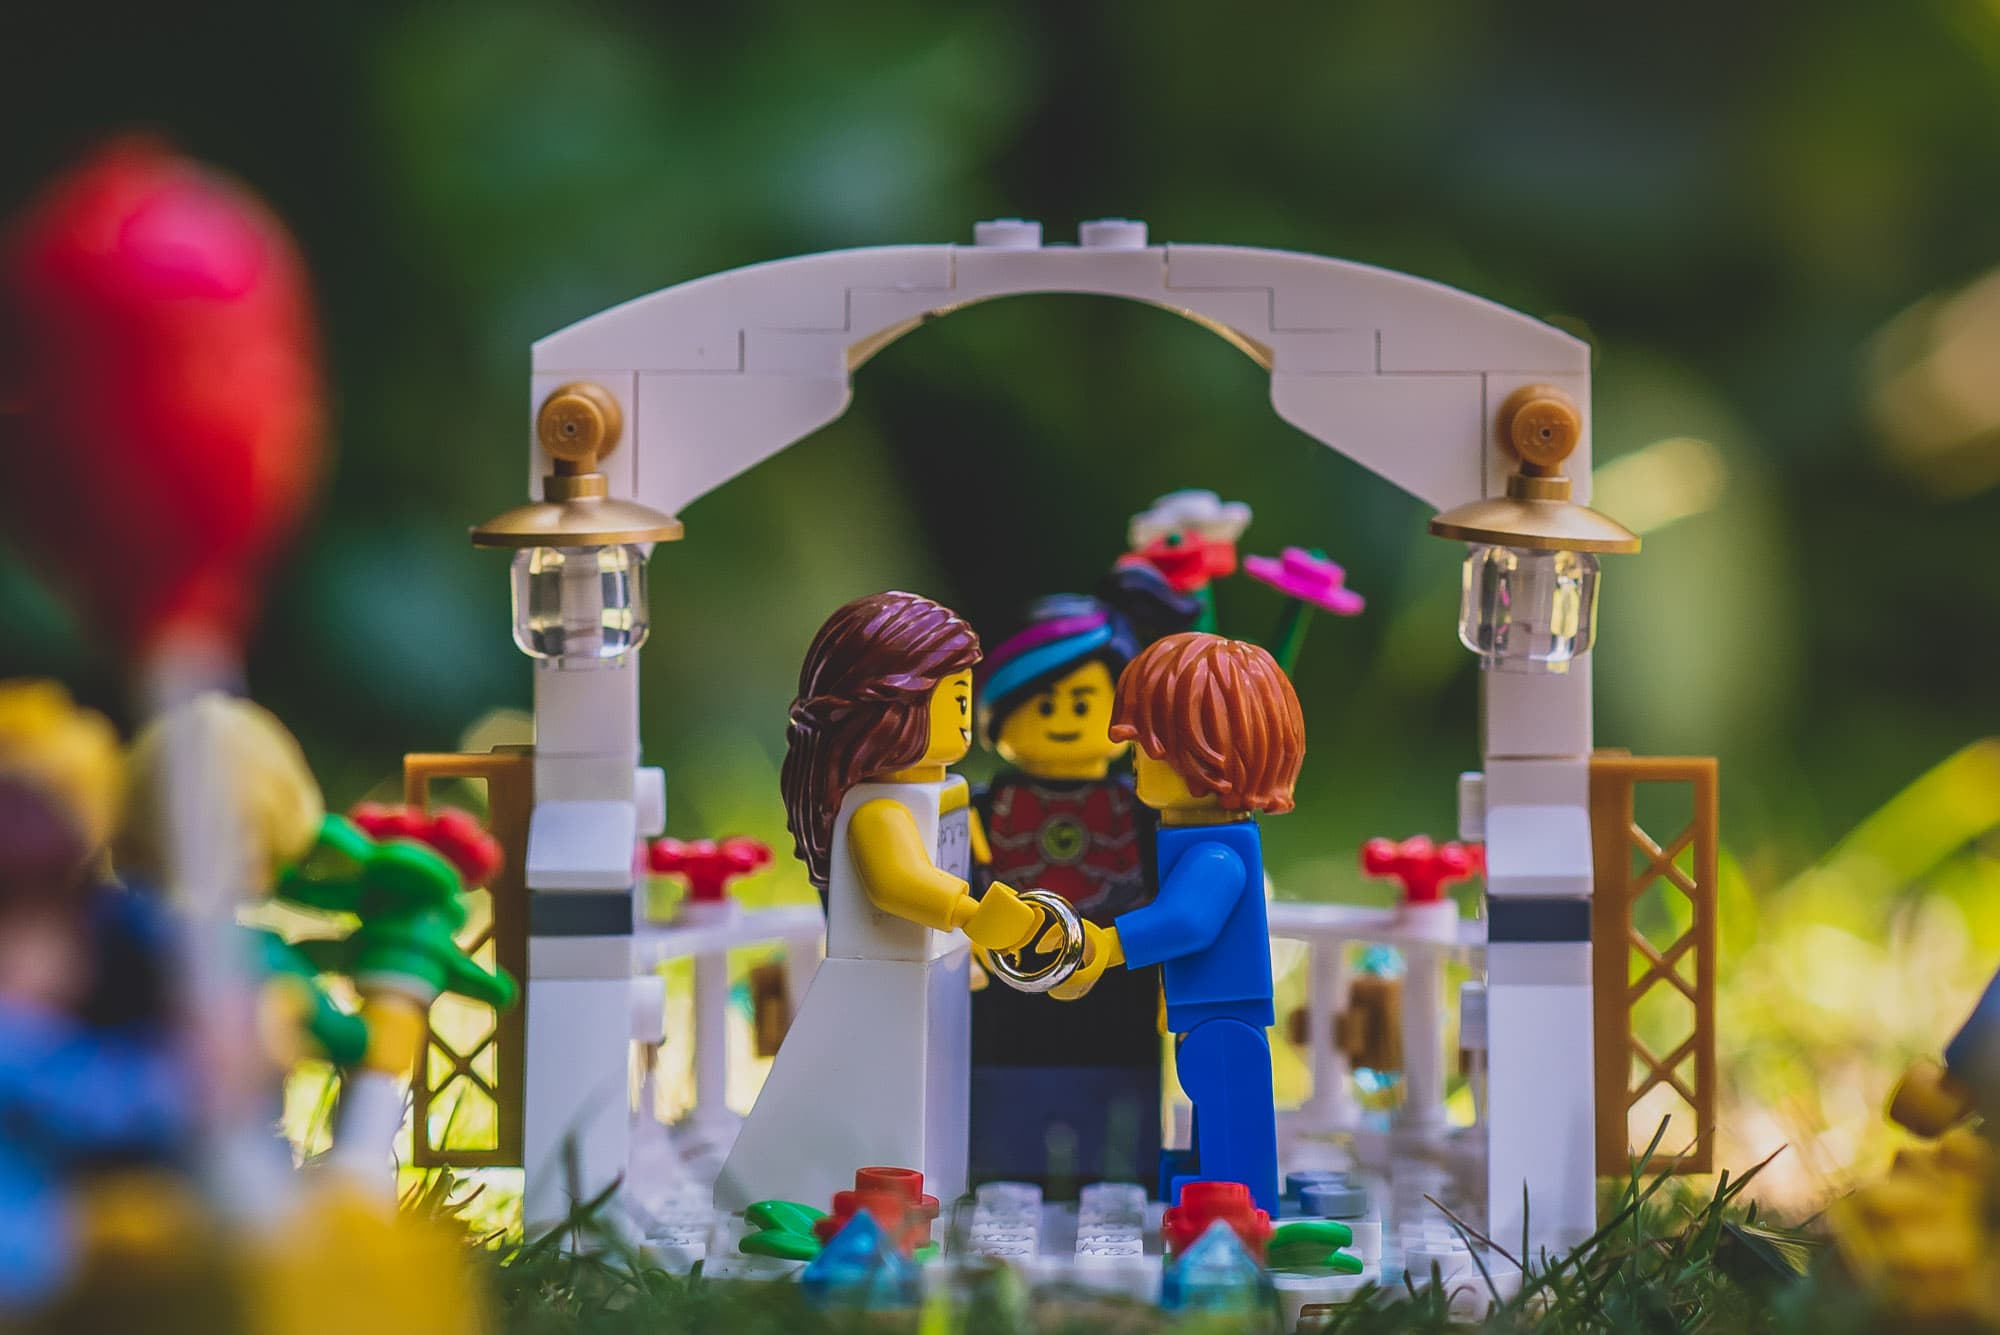 Lego Bride and Groom exchanging vows